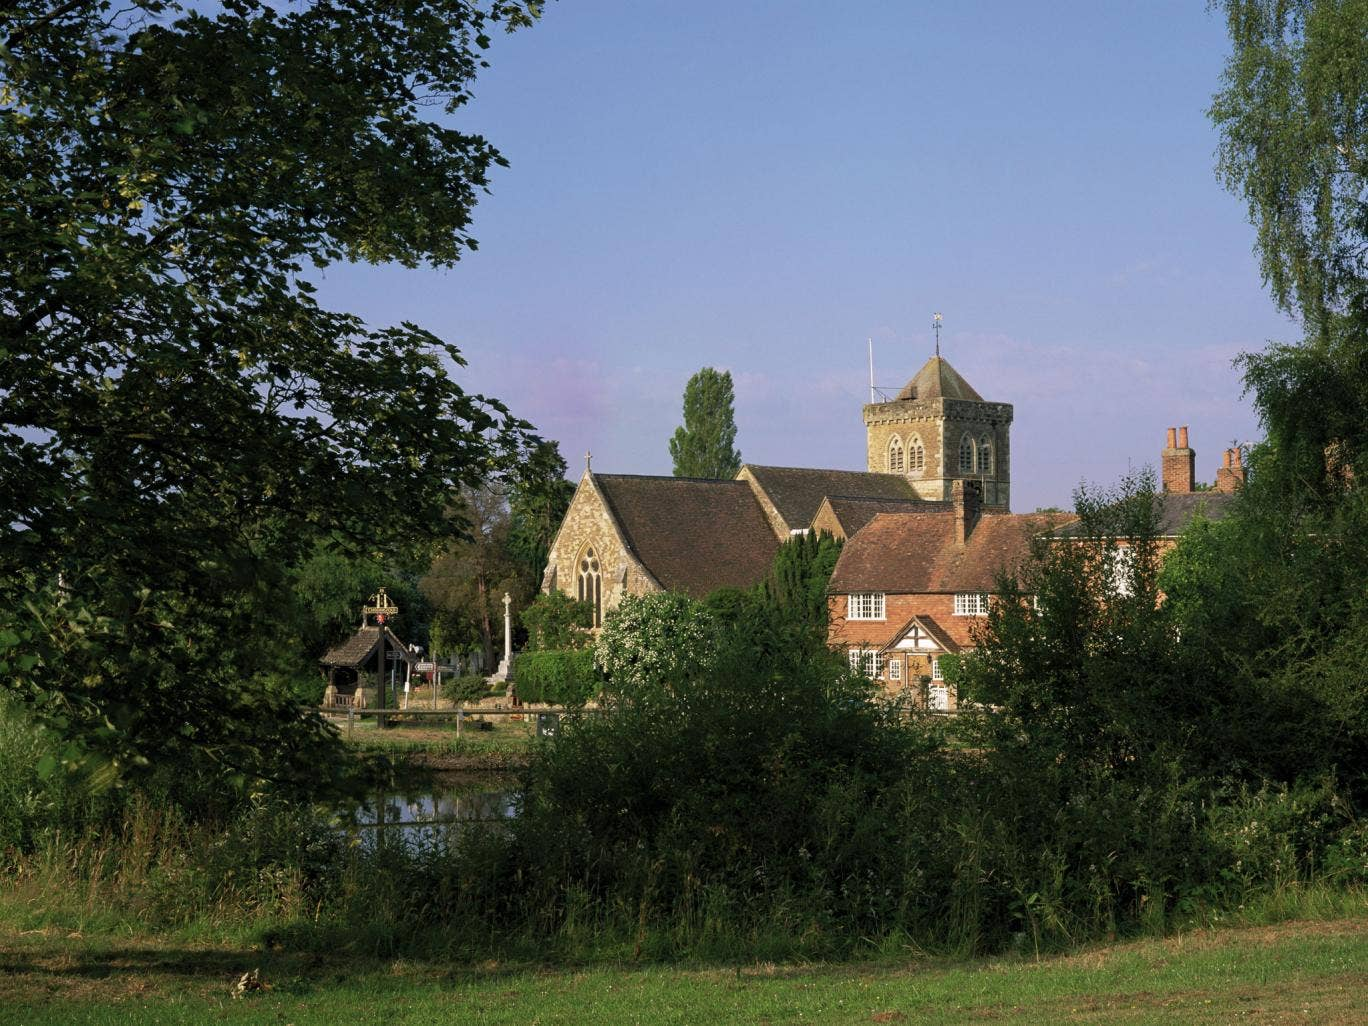 Waverley residents – such as those in Chiddingfold, pictured – experience the highest living standards in rural Britain, according to a study